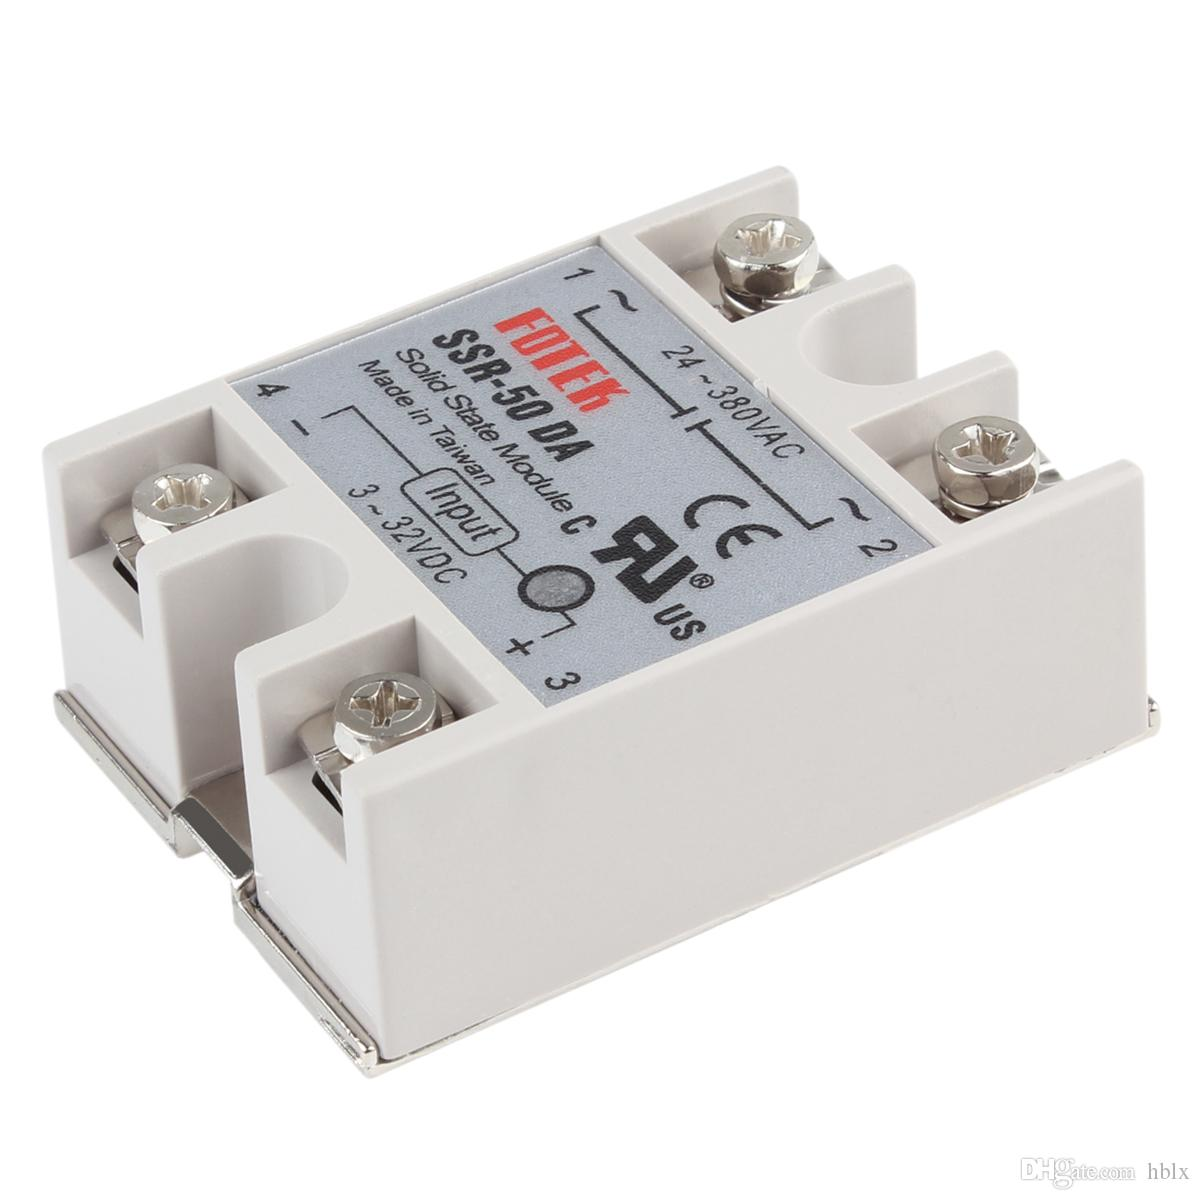 Solid State Relay Dc 12v Headlight Wiring Diagrams Amazon New Auto Ssr 50da 3 32vdc Input 50a 250v Output 24 Rh Dhgate